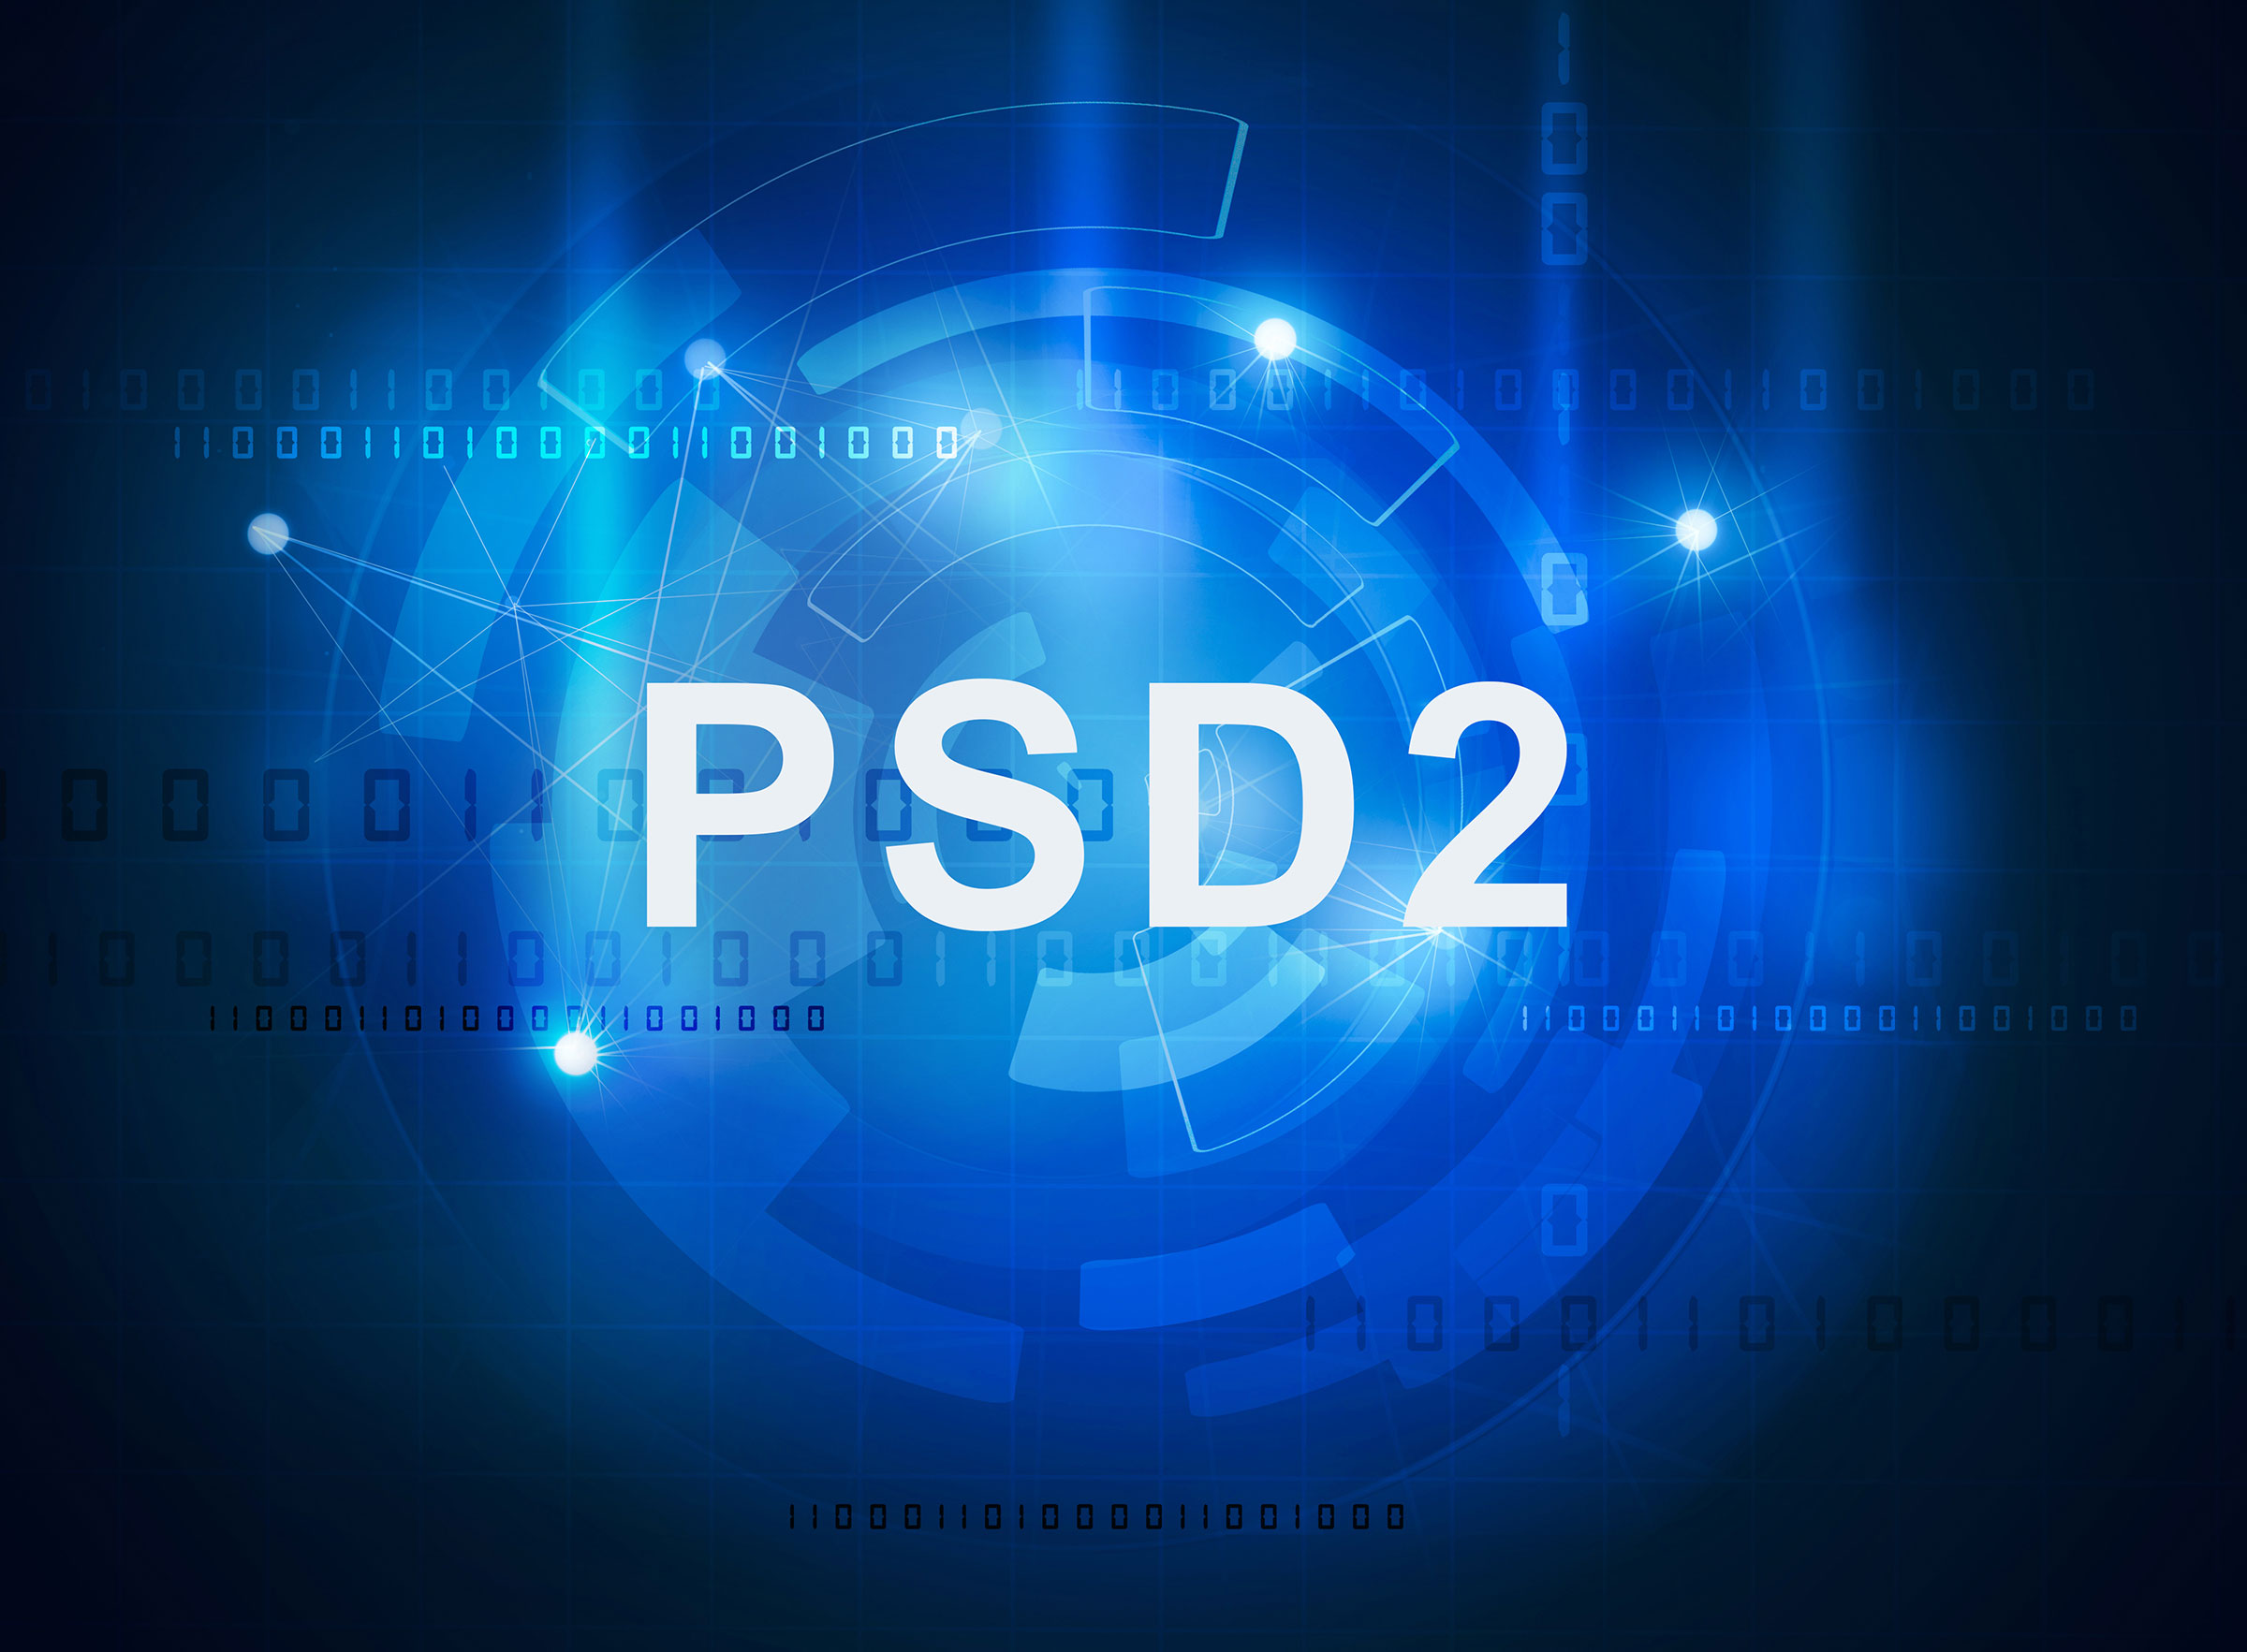 Everything you always wanted to know about PSD2 ✻ But were afraid to ask